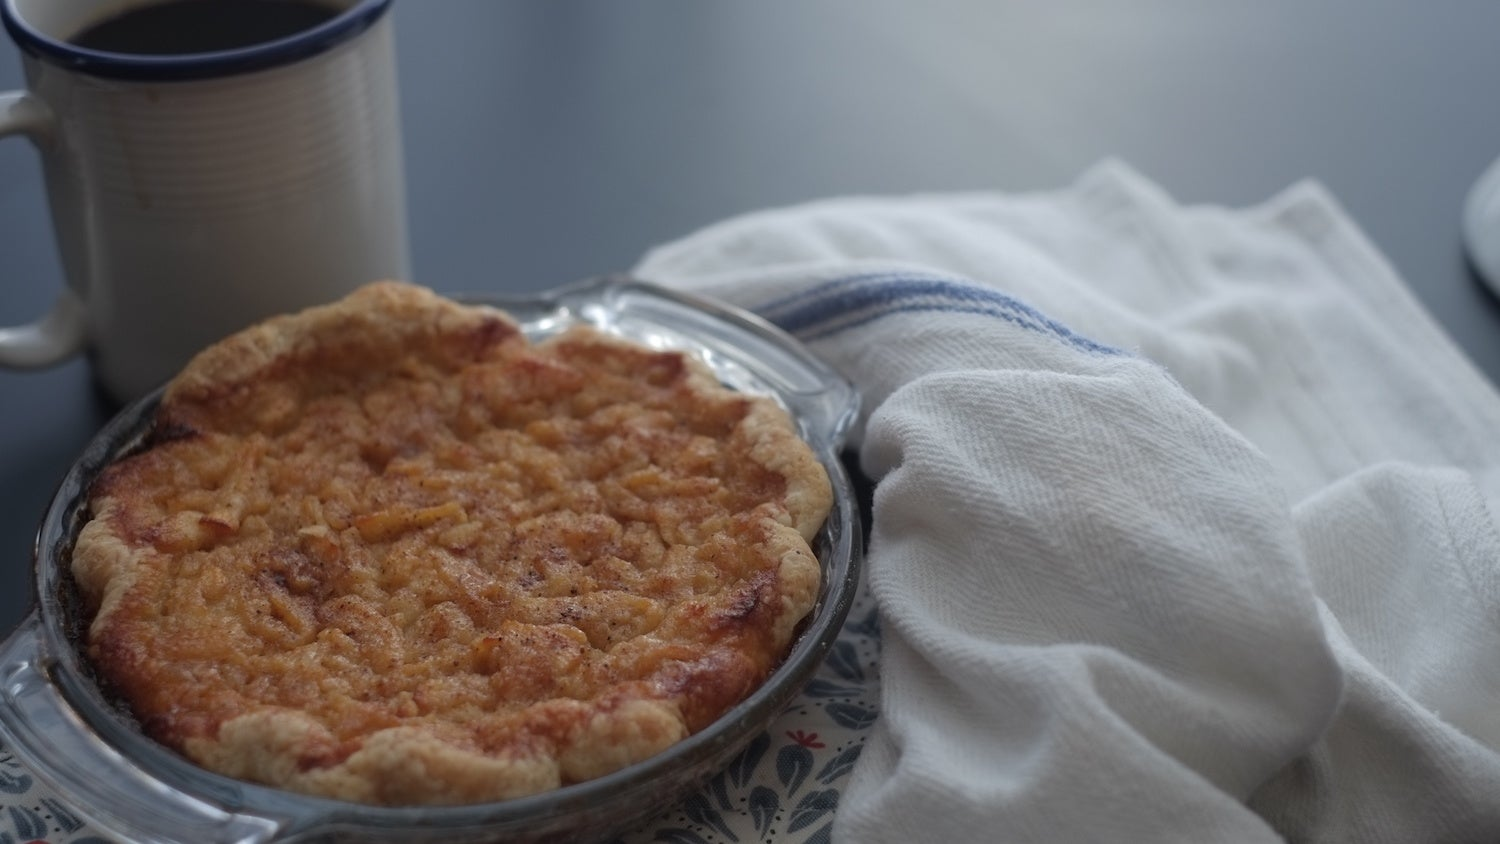 Try Baking This Boiled Cider Pie